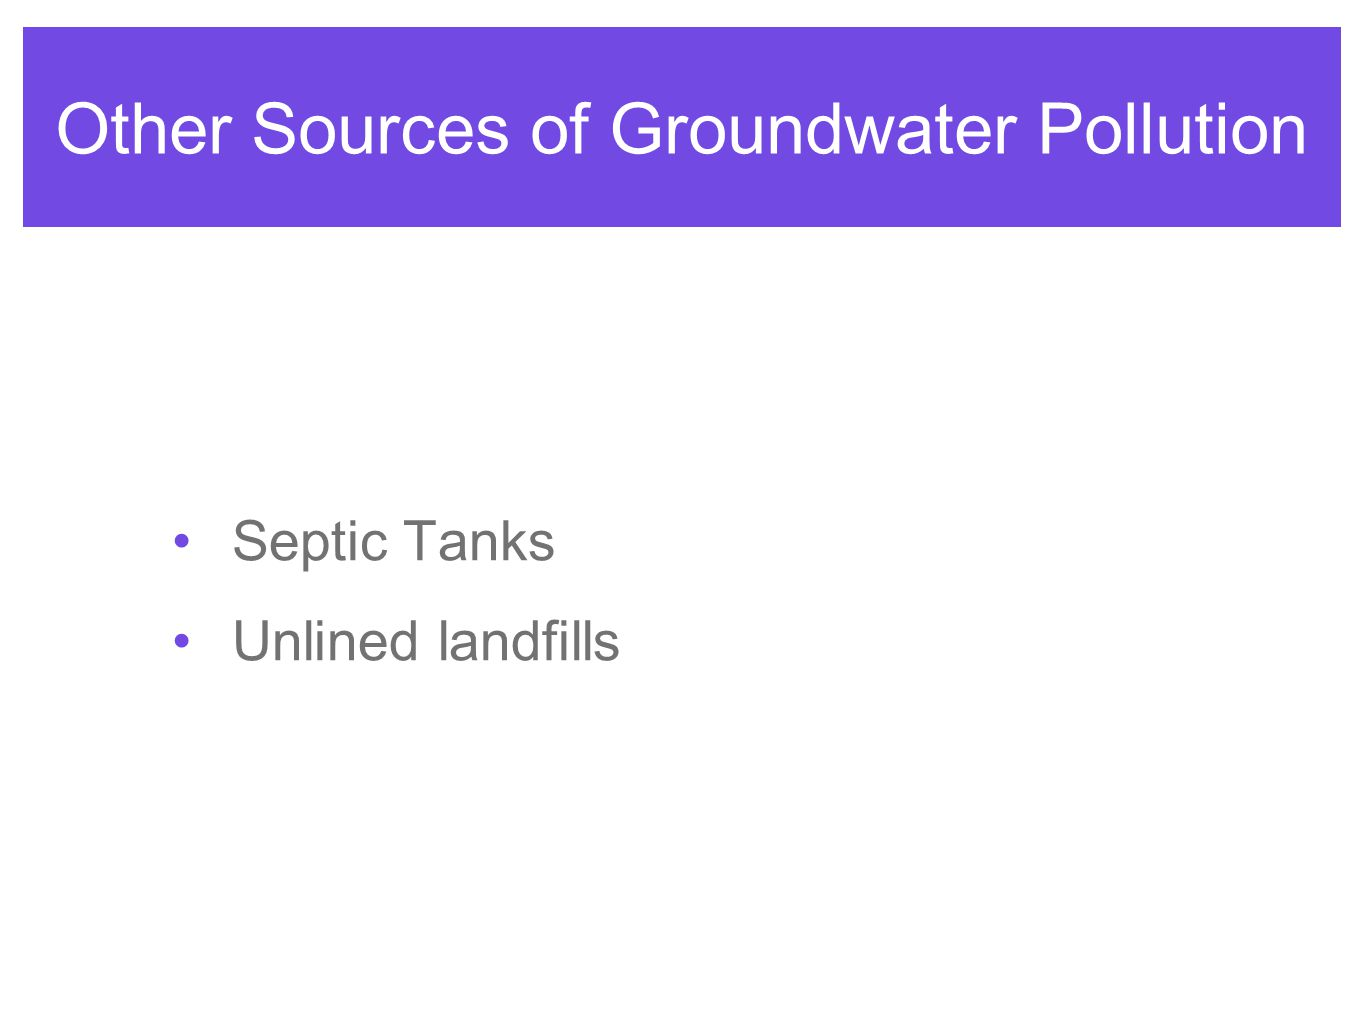 Other Sources of Groundwater Pollution